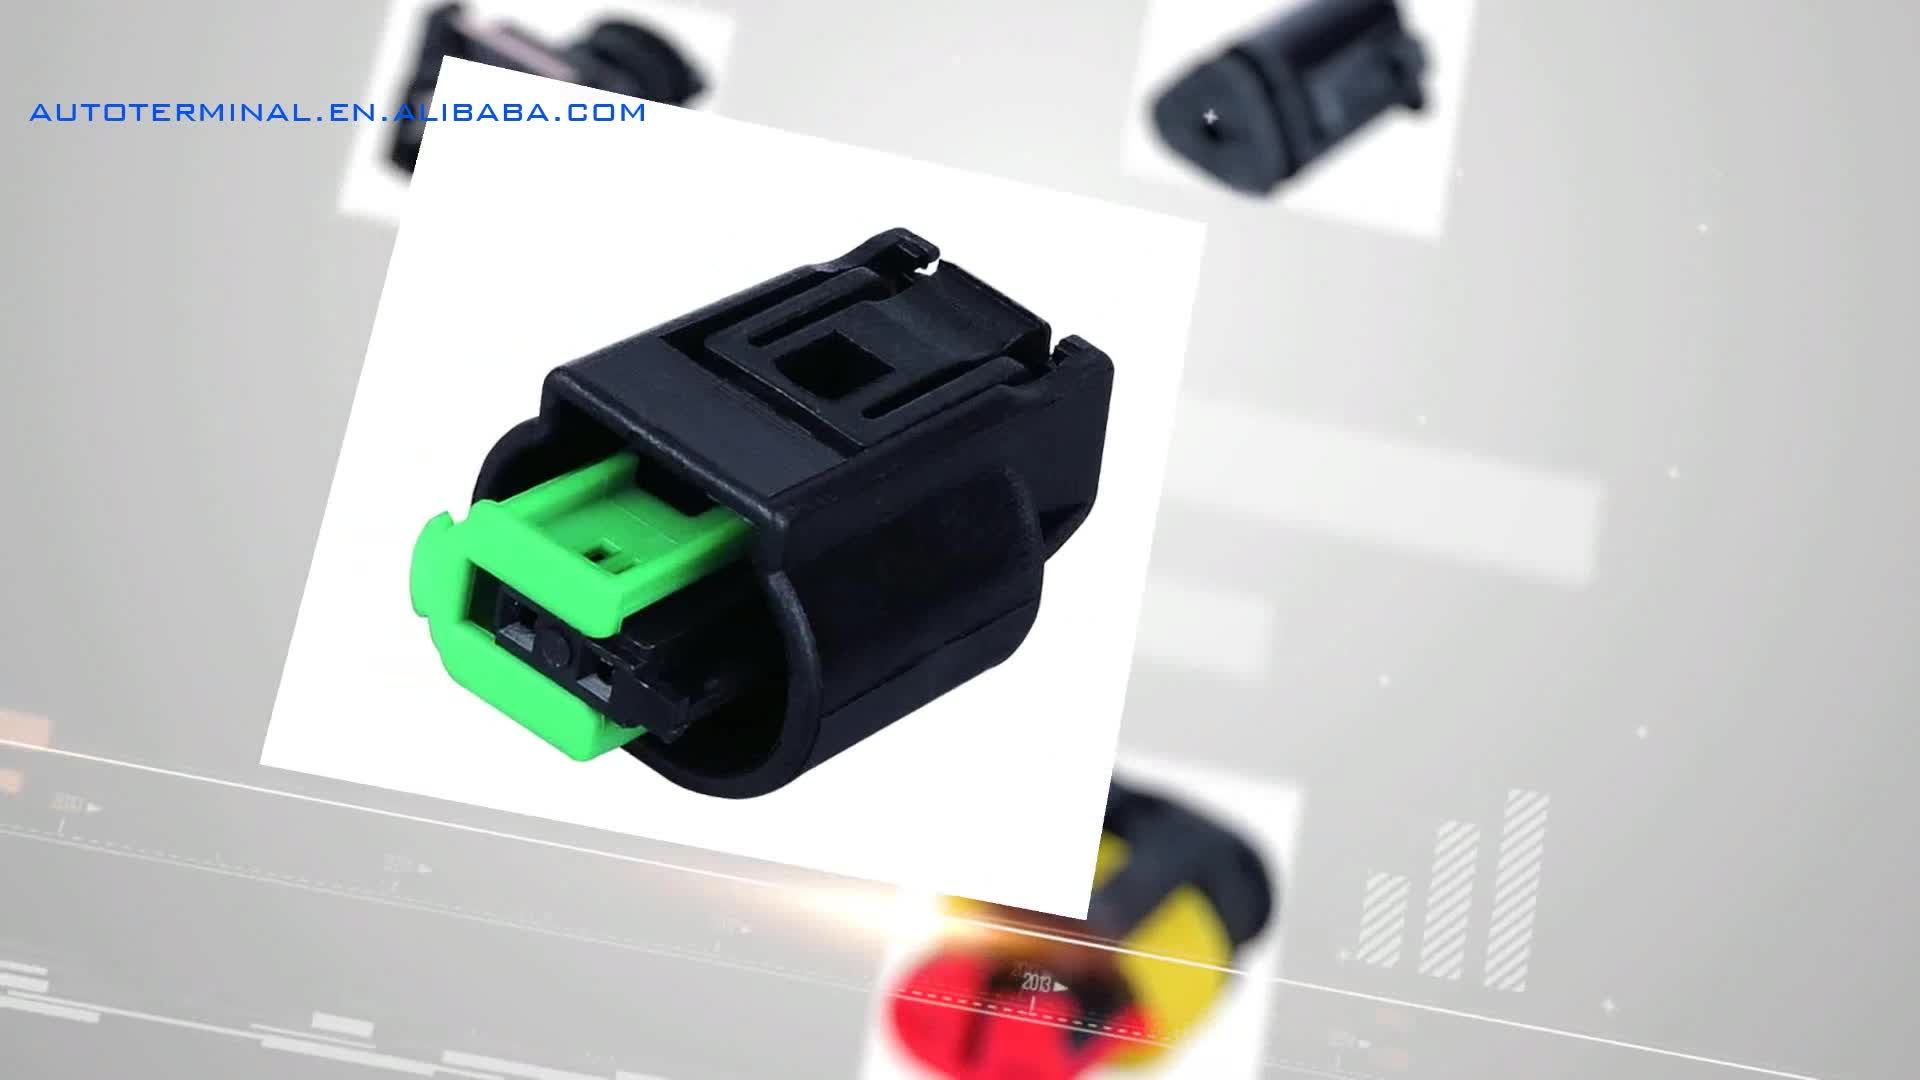 Dj7031y 23 21 Gm Wire 3 Pin Battery Connector Waterproof Plug And Wiring Connectors Socket With